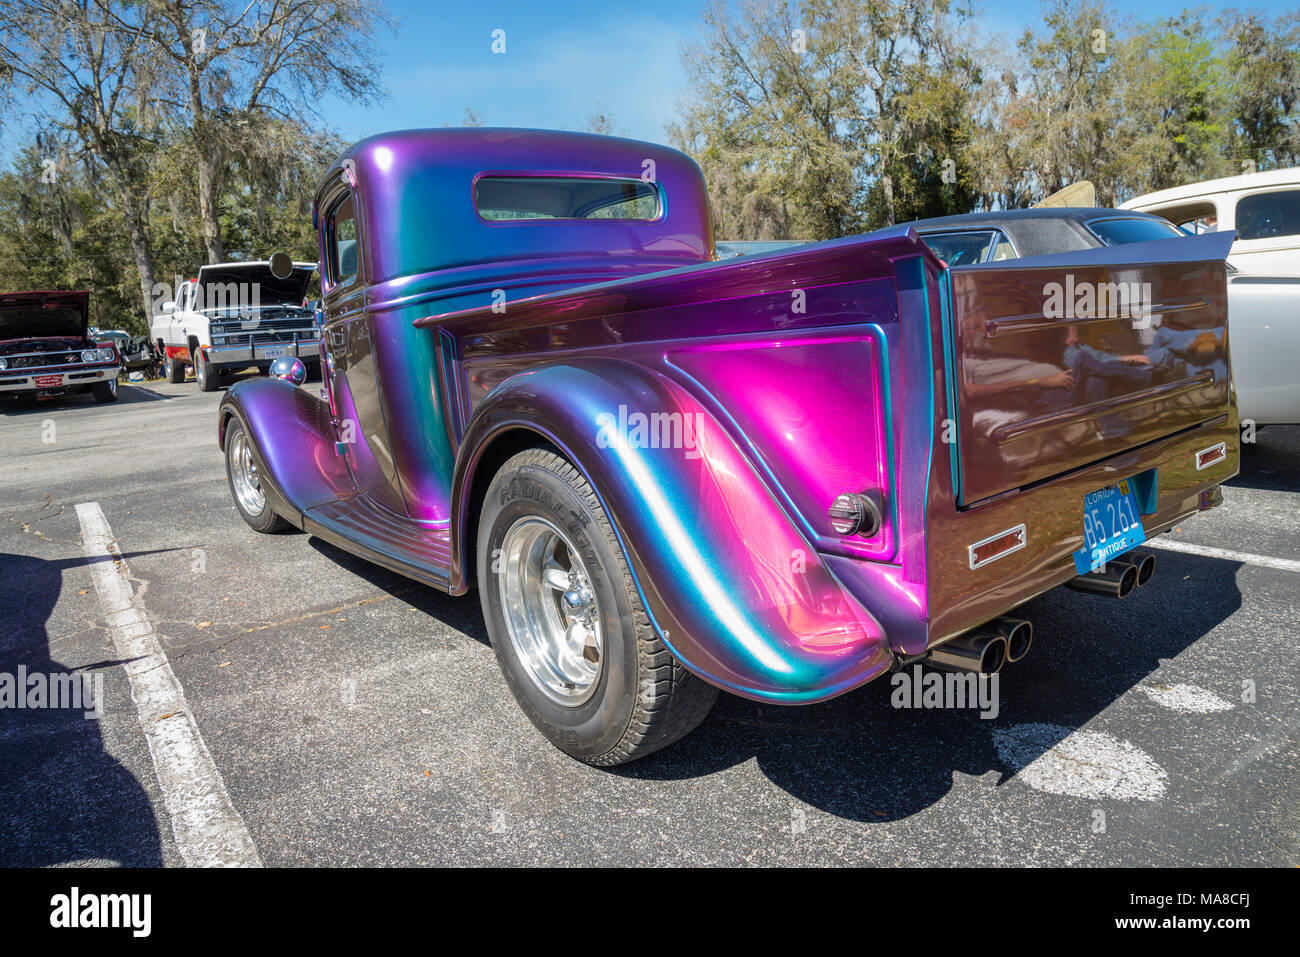 Car Show in Ft. White, Florida Stock Photo: 178435702 - Alamy